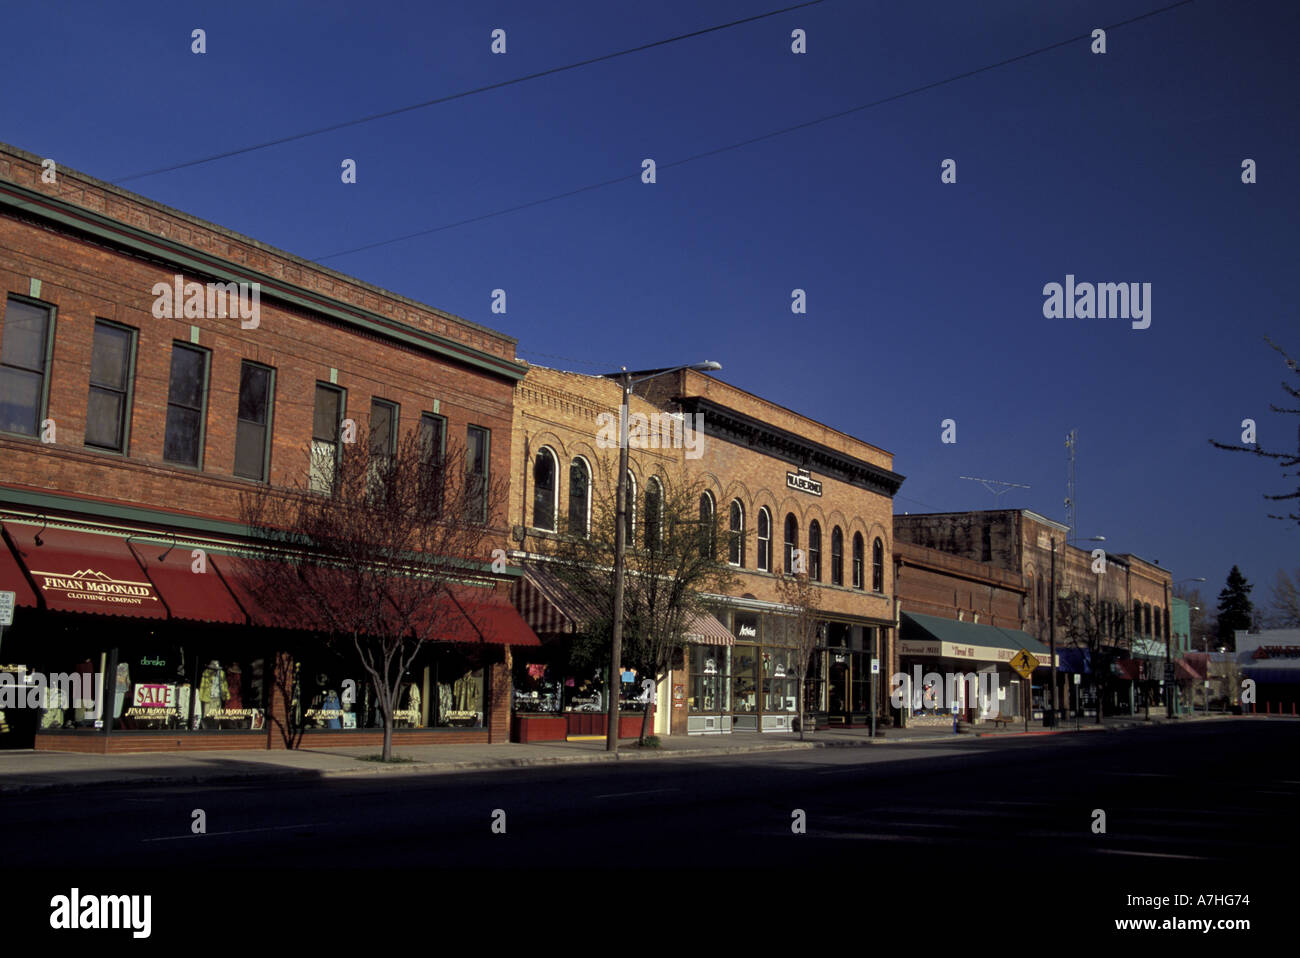 North America, USA, Idaho, Bonner County, downtown Sandpoint - Stock Image